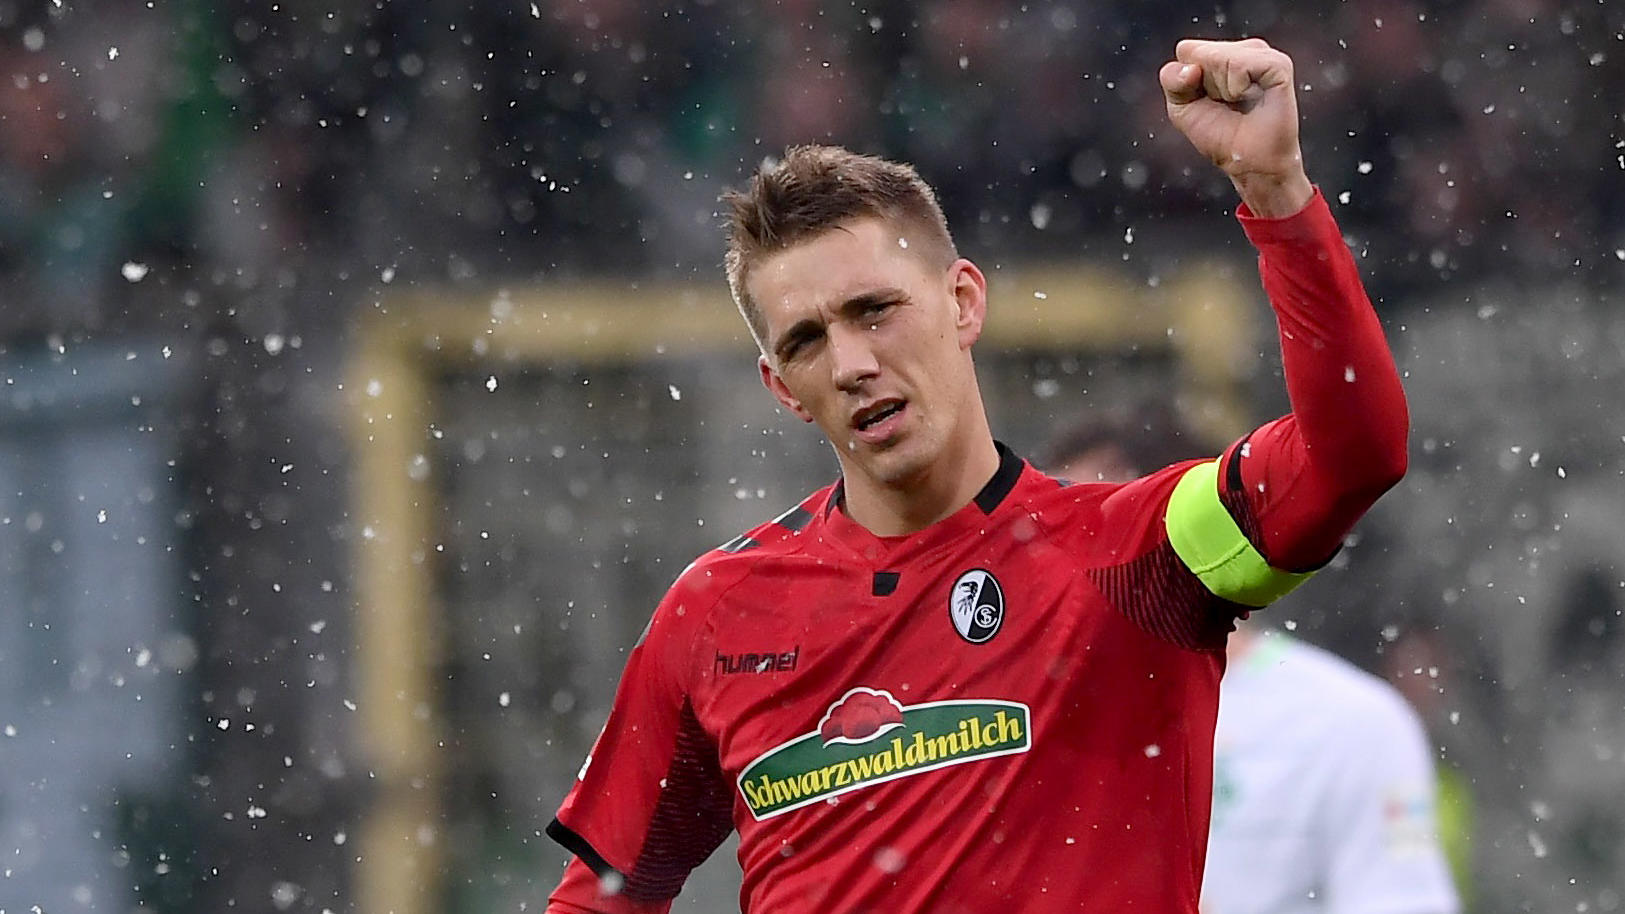 FREIBURG GERMANY - FEBRUARY 17: Nils Petersen of SC Freiburg celebrates his opening goal during the Bundesliga match between Sport-Club Freiburg and SV Werder Bremen at Schwarzwald-Stadion on February 17, 2018 in Freiburg, Germany.  (Photo by Michael